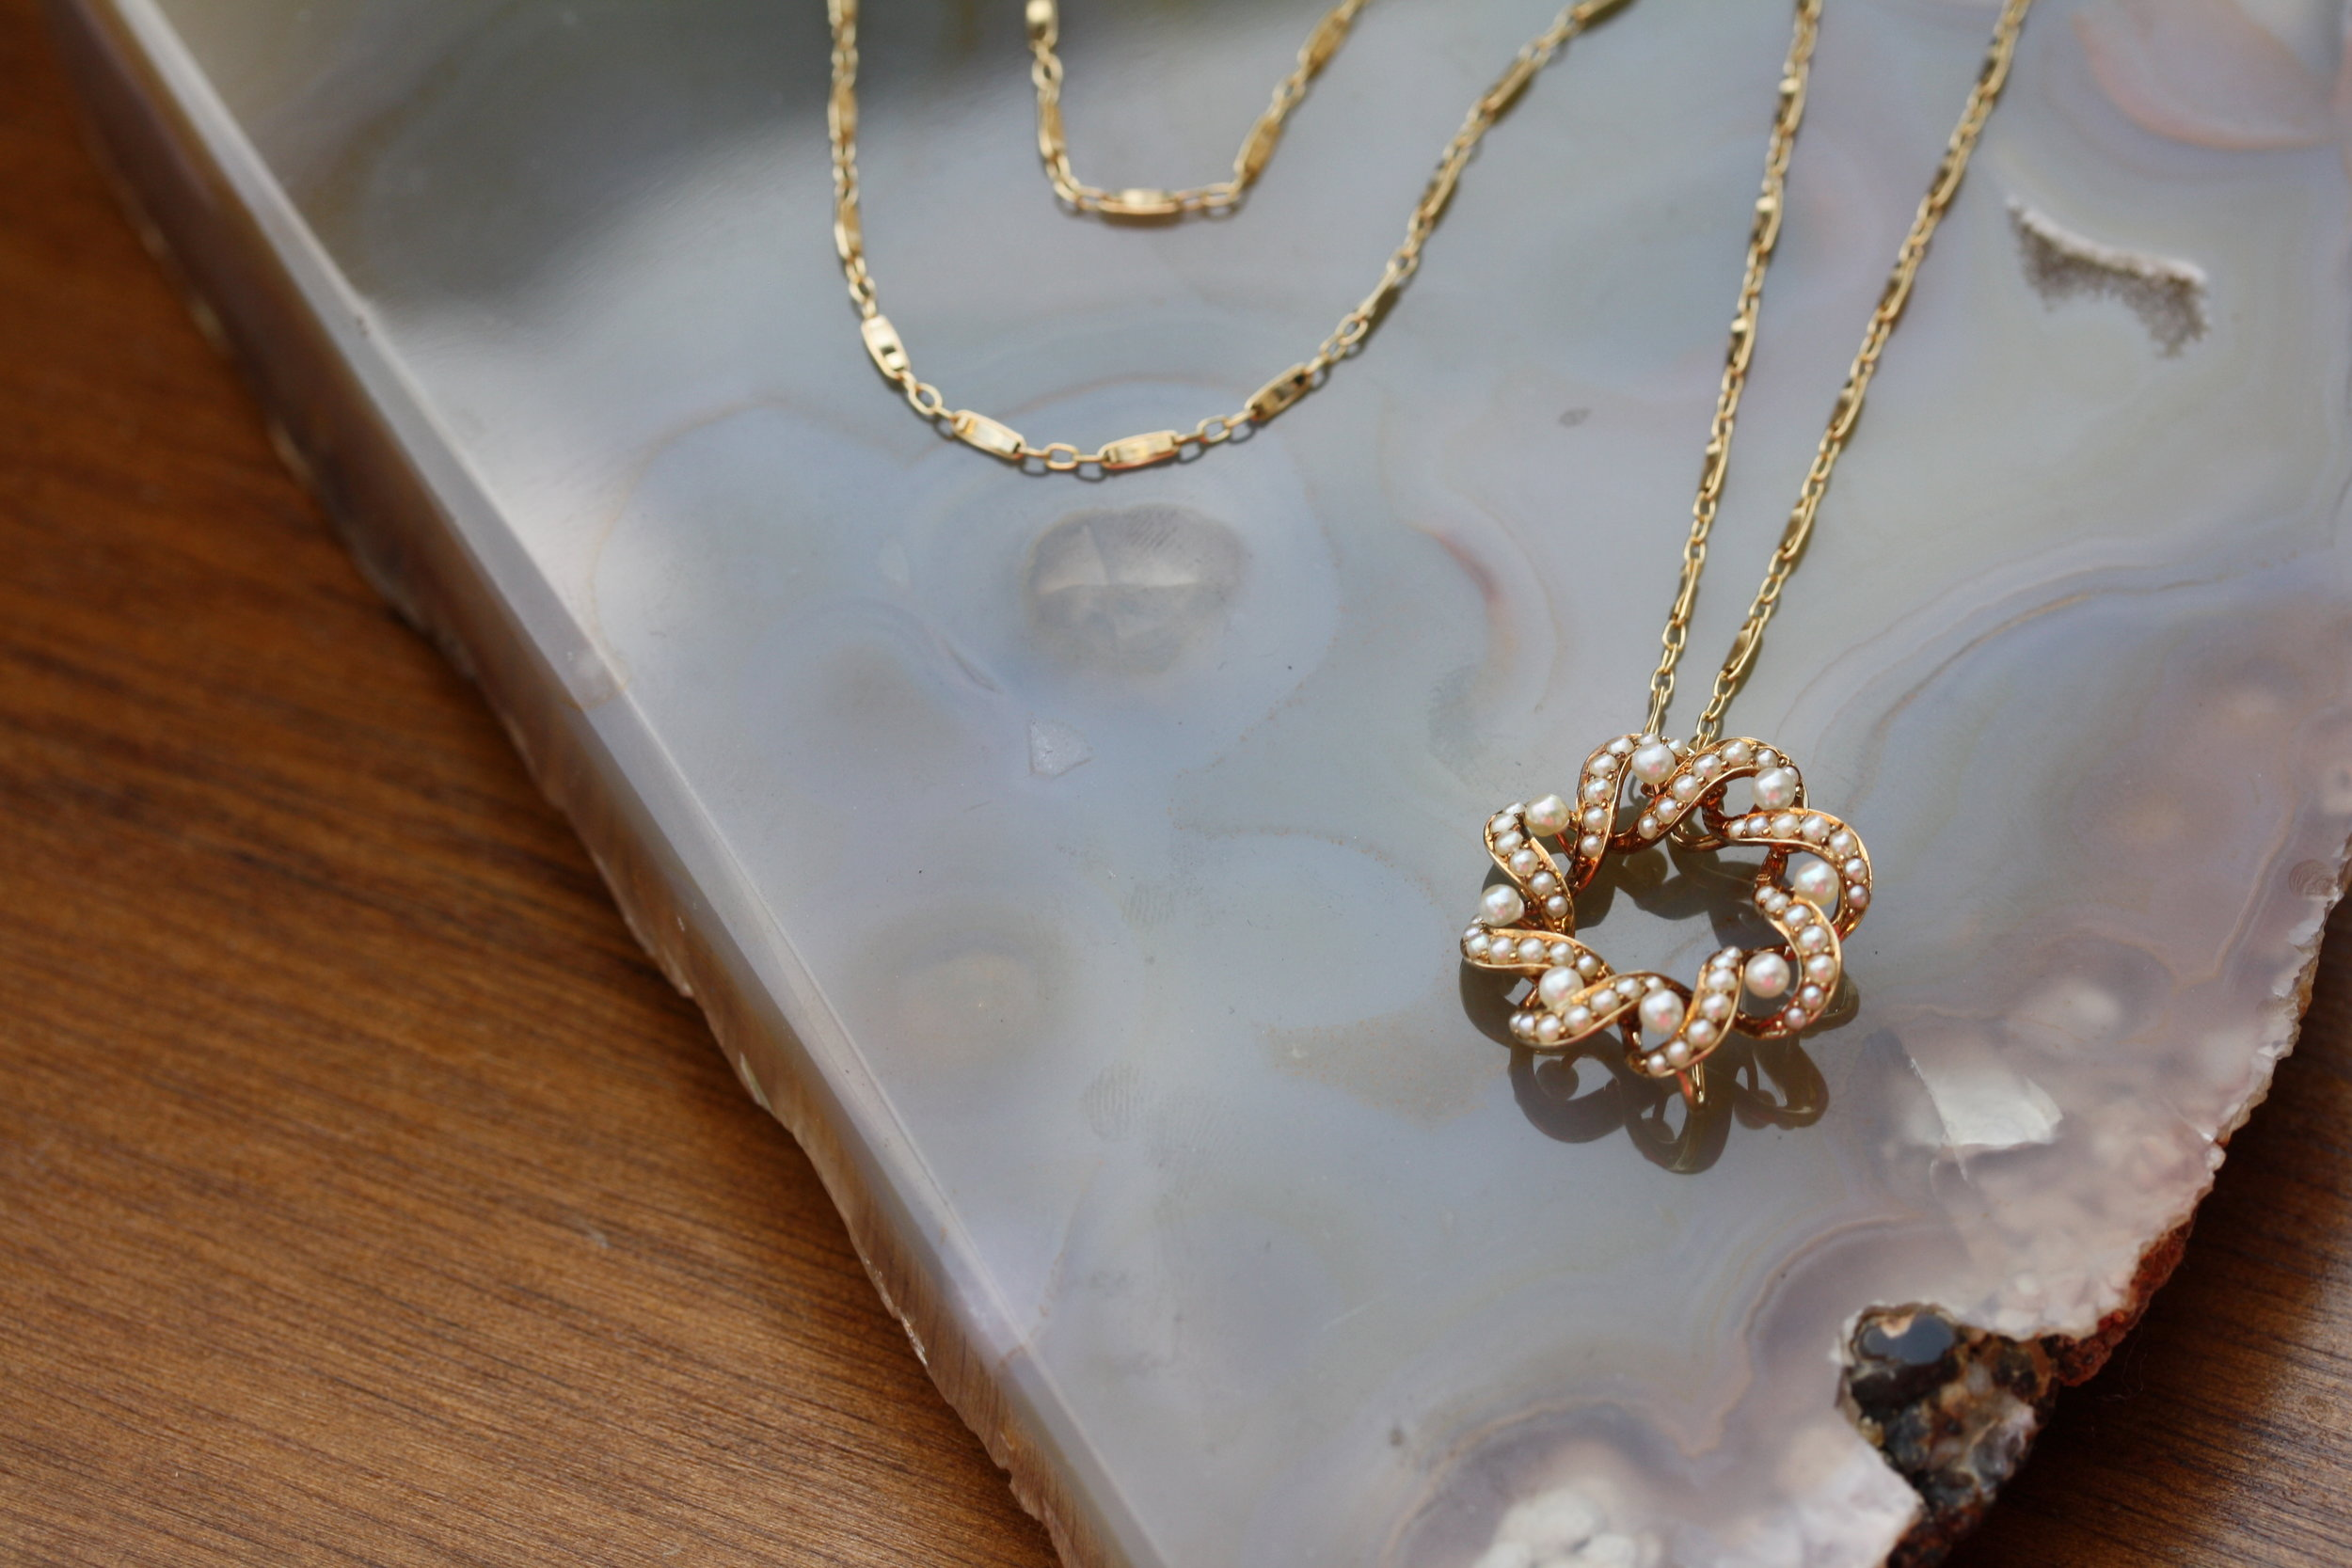 VCON Victorian Pearl Wreath Pendant on Vintage Inspired Chain Necklace_02 copy.JPG